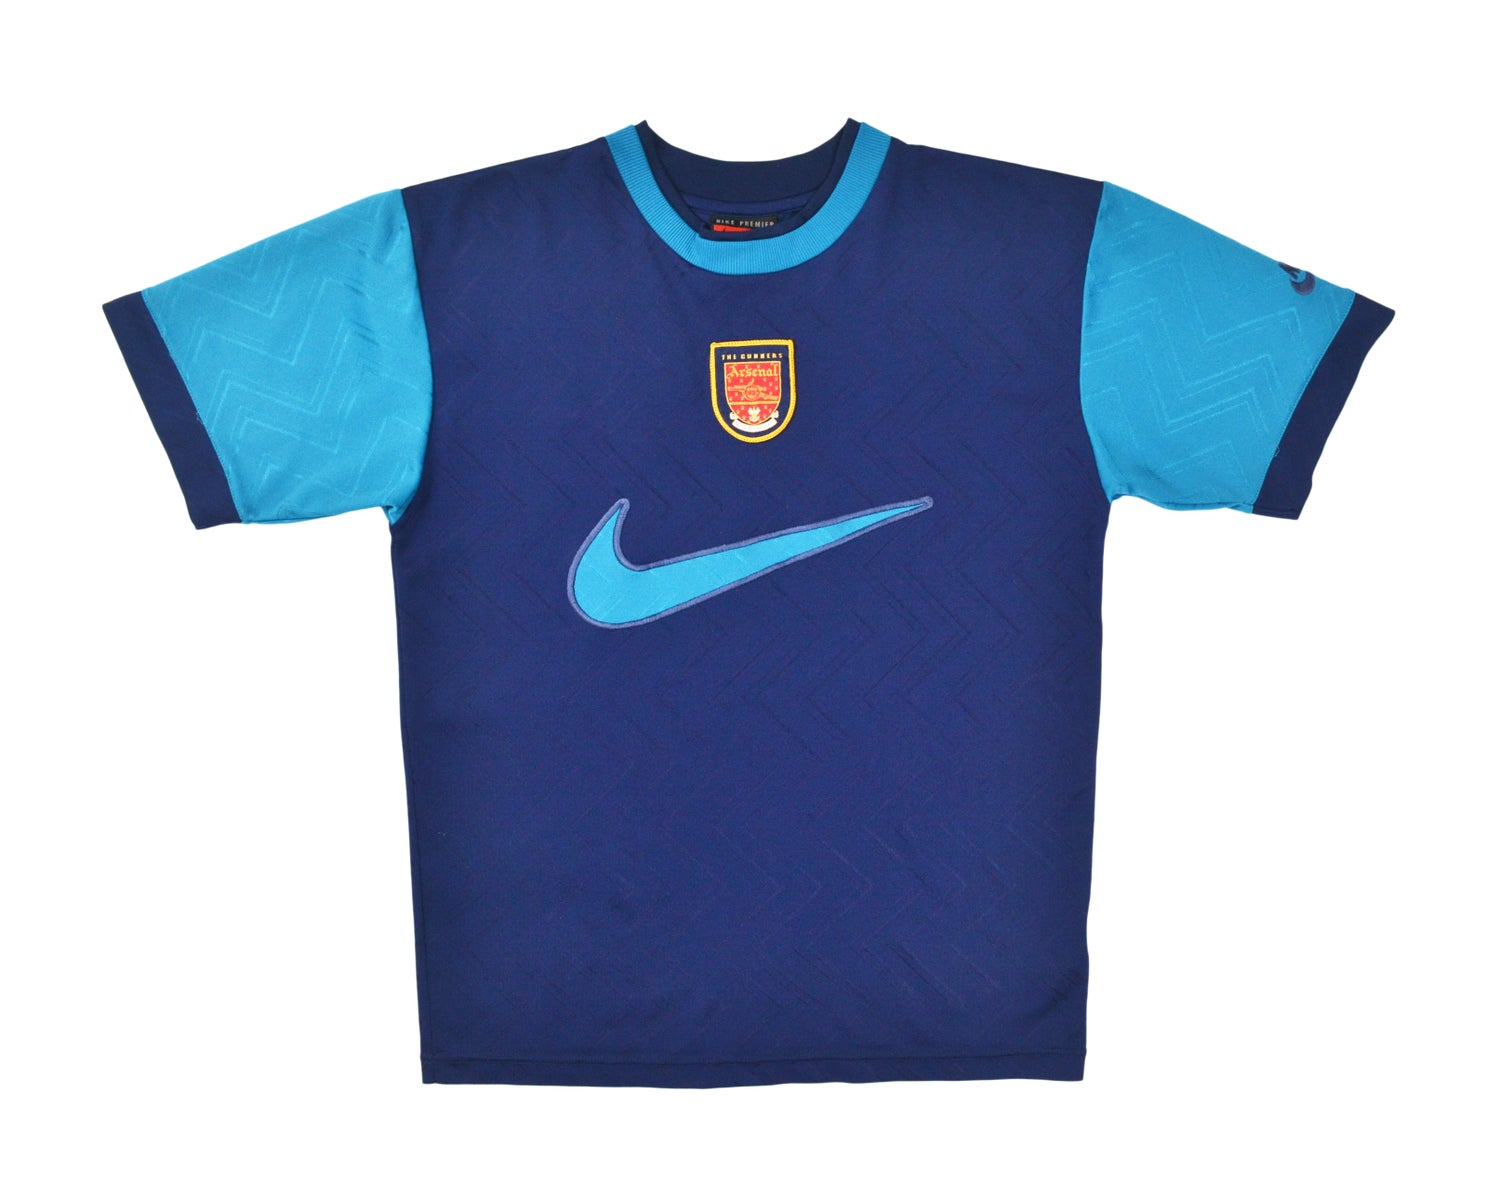 Image of 1994-96 Nike Arsenal Nike Training Shirt M